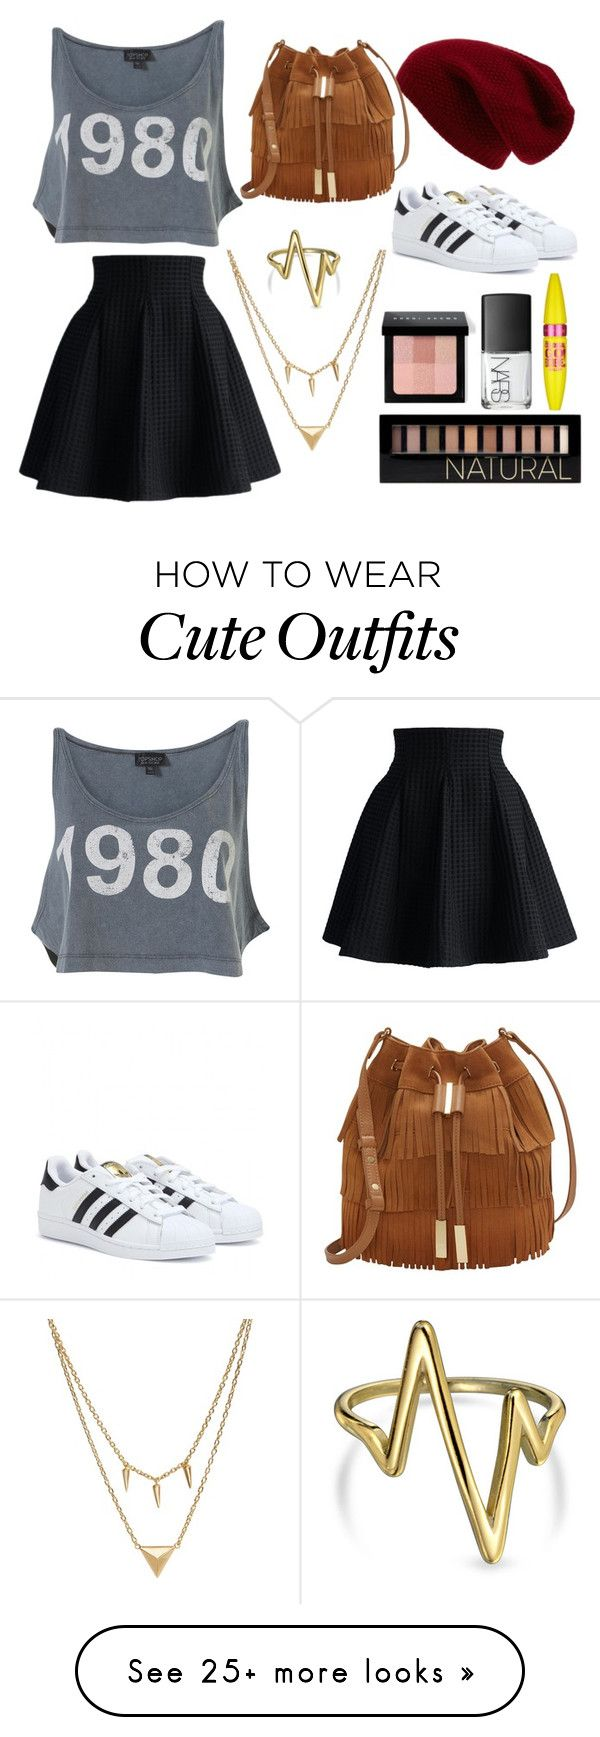 """Cute and Lazy Outfit"" by marissahines on Polyvore featuring Sole Society, Chicwish, Bling Jewelry, Edge of Ember, Forever 21, Bobbi Brown Cosmetics, NARS Cosmetics, Maybelline, Vince Camuto and adidas"